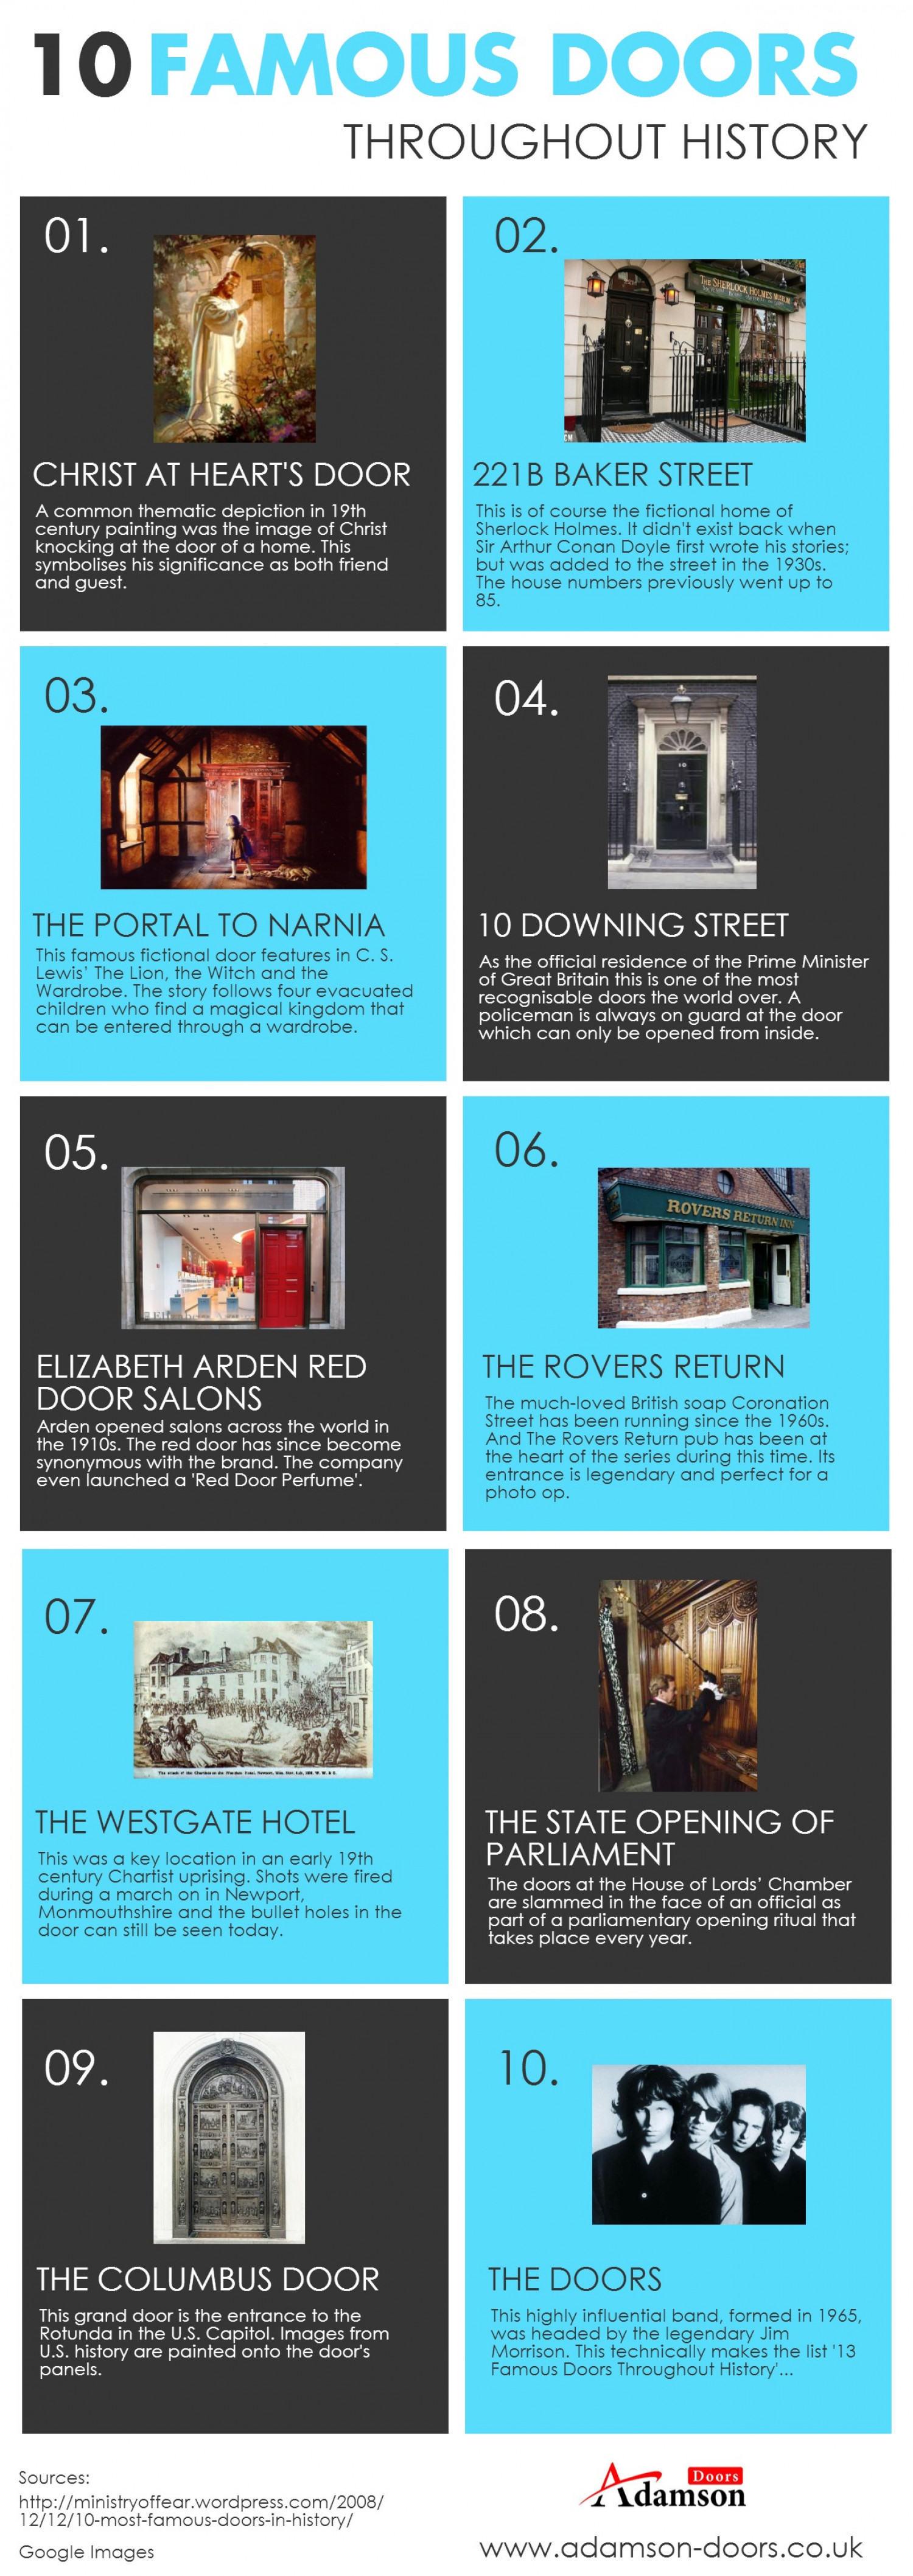 10 Famous Doors throughout History Infographic